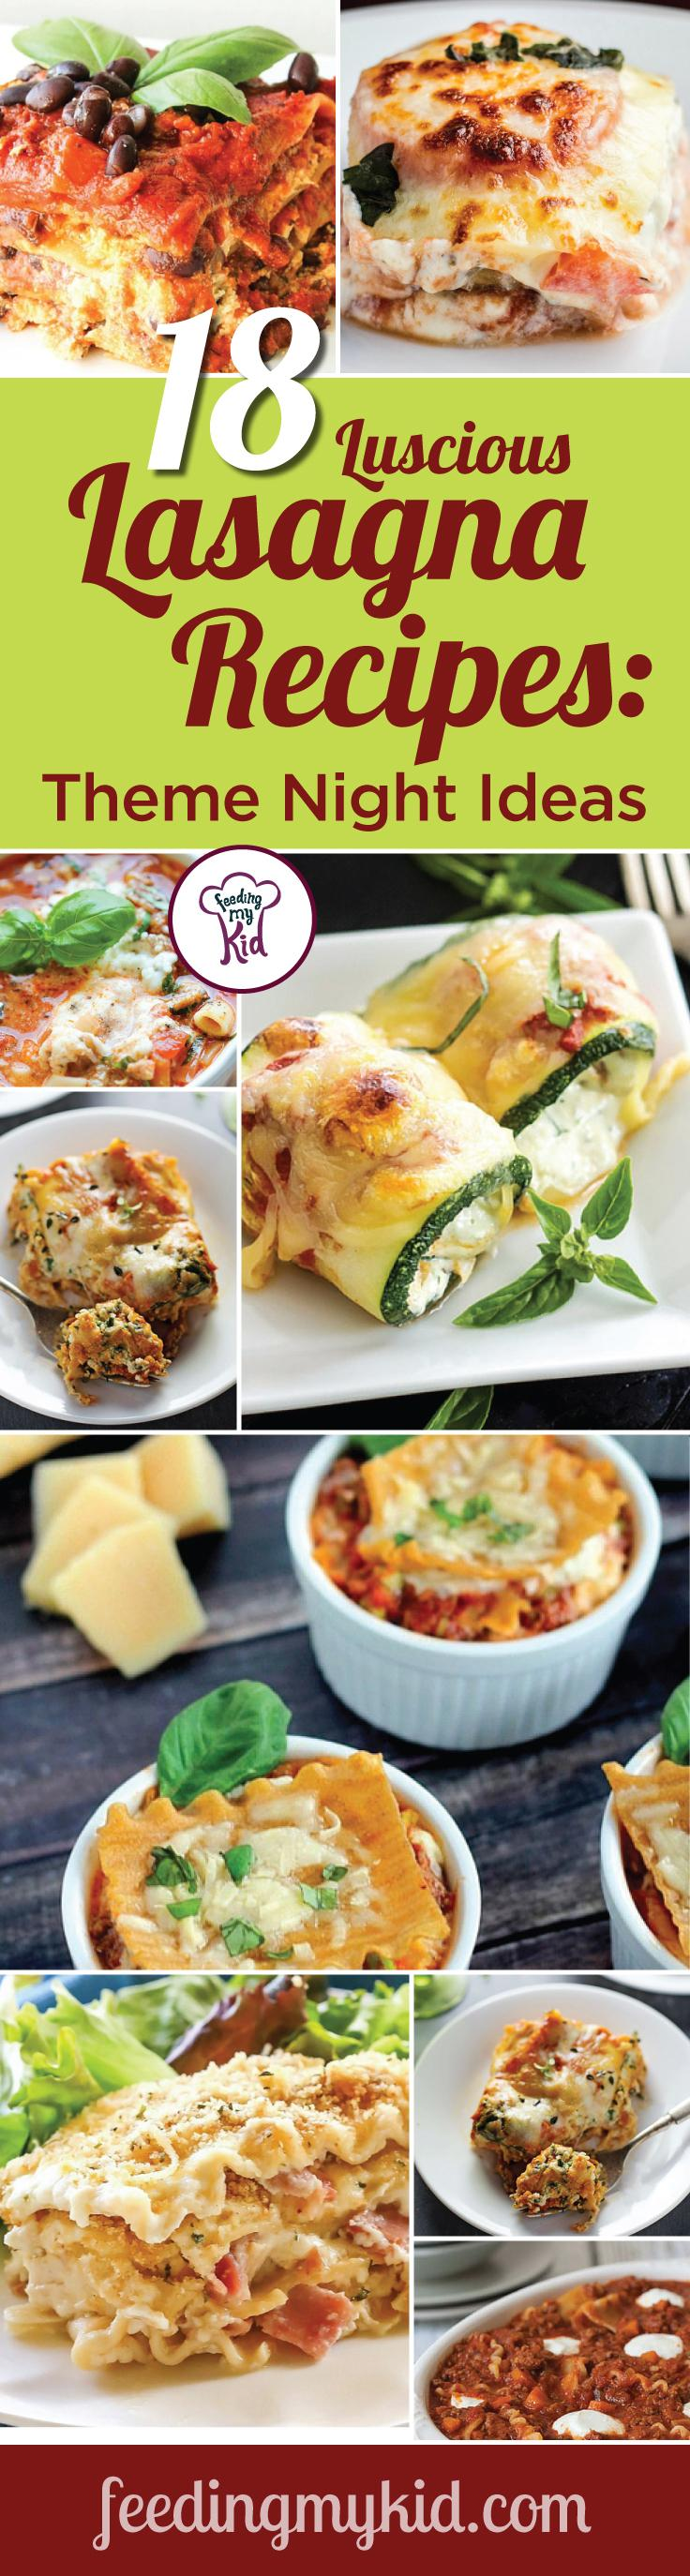 These easy lasagna recipes are warm and delicious and will make the perfect meal for any occasion. Feeding My Kid is a great website for parents, filled with all the information you need about how to raise your kids, from healthy tips to nutritious recipes. #lasagna #mealtime #themenight